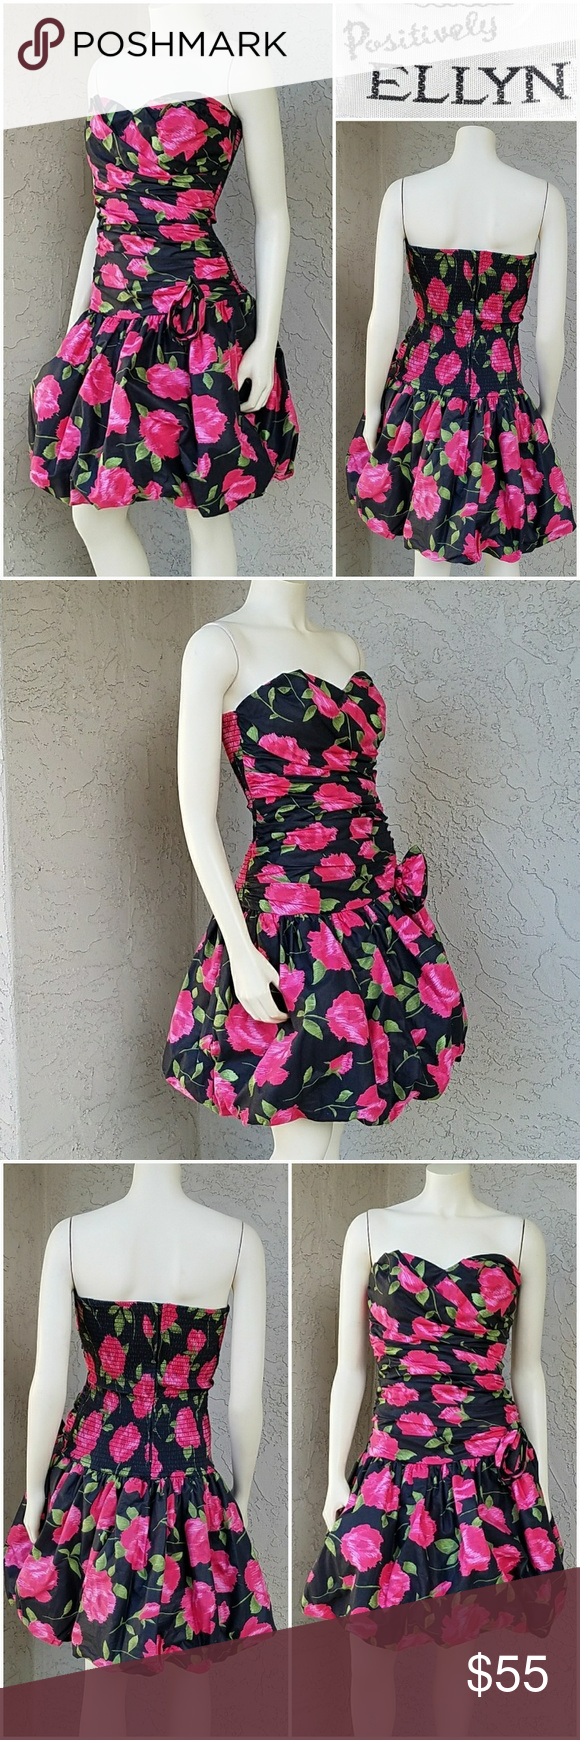 Vintage strapless pink roses bubble dress bubble skirt bodice and